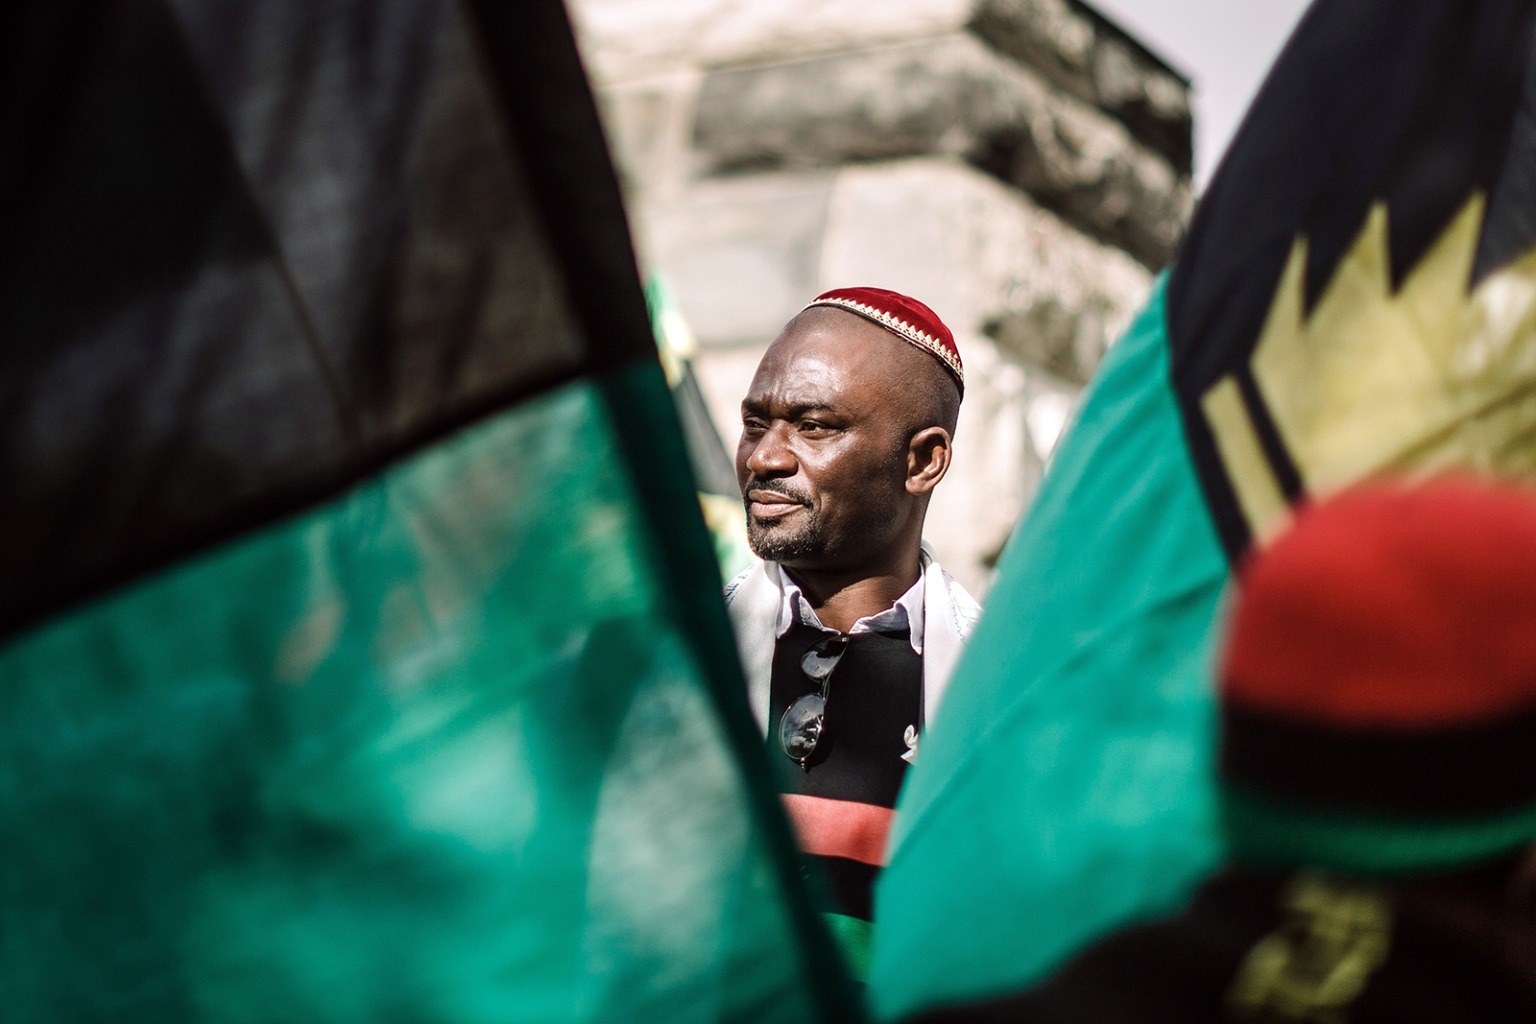 A protestor between Biafra flag takes part in a demonstration in Durban, South Africa, on May 30. The Freedom March for Biafra, held worldwide and organized by the Indigenous People of Biafra, marks the anniversary of the unilateral declaration of independence in 1967 that sparked a brutal 30-month civil war in Nigeria. RAJESH JANTILAL/AFP/Getty Images